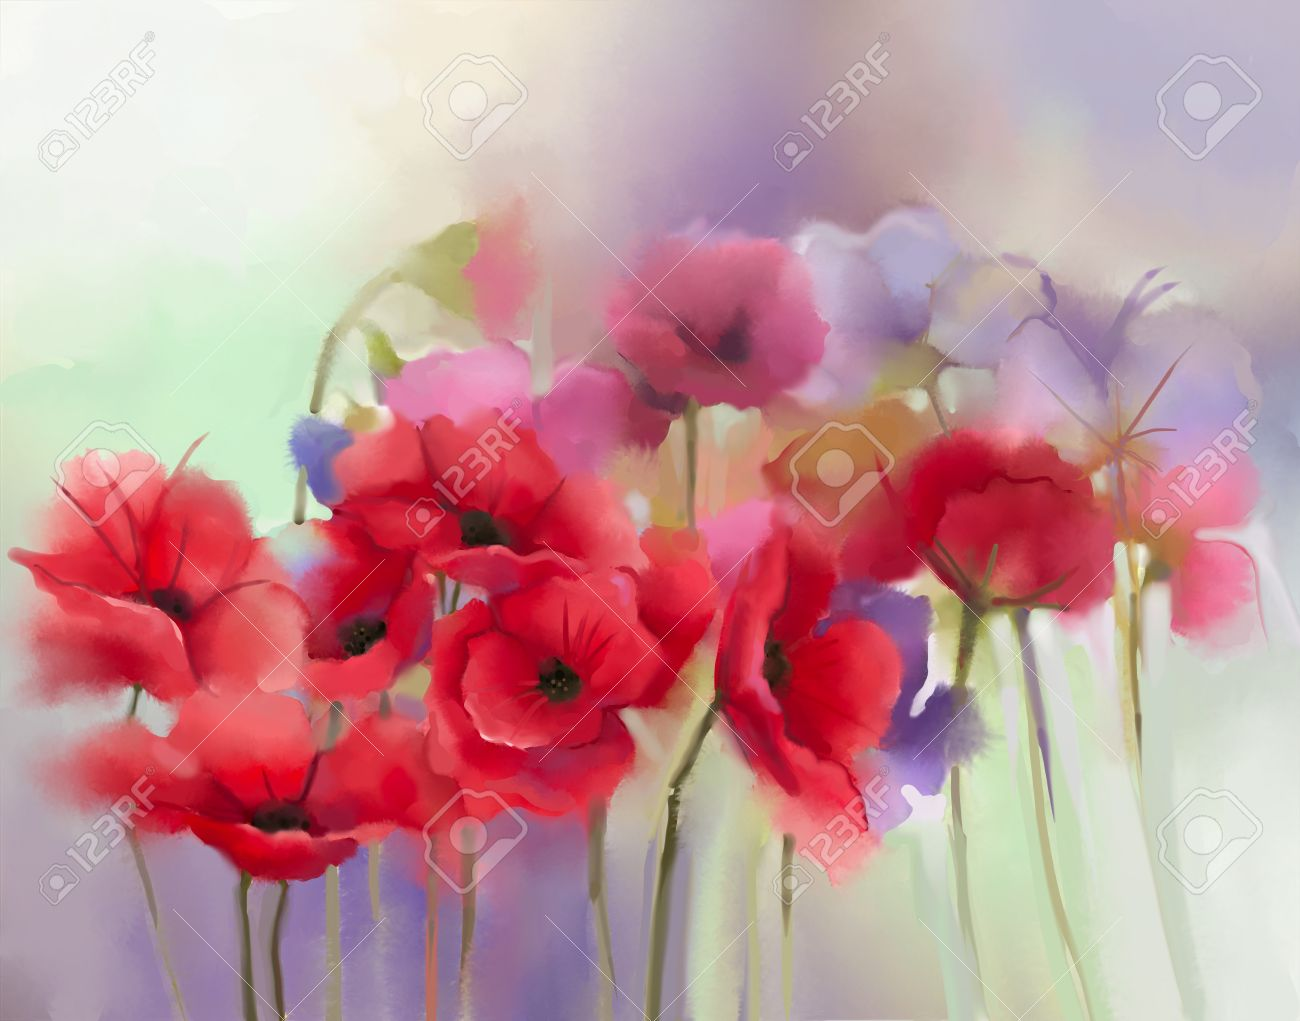 Watercolor red poppy flowers painting flower paint in soft color stock photo watercolor red poppy flowers painting flower paint in soft color and blur style soft green and pupple background mightylinksfo